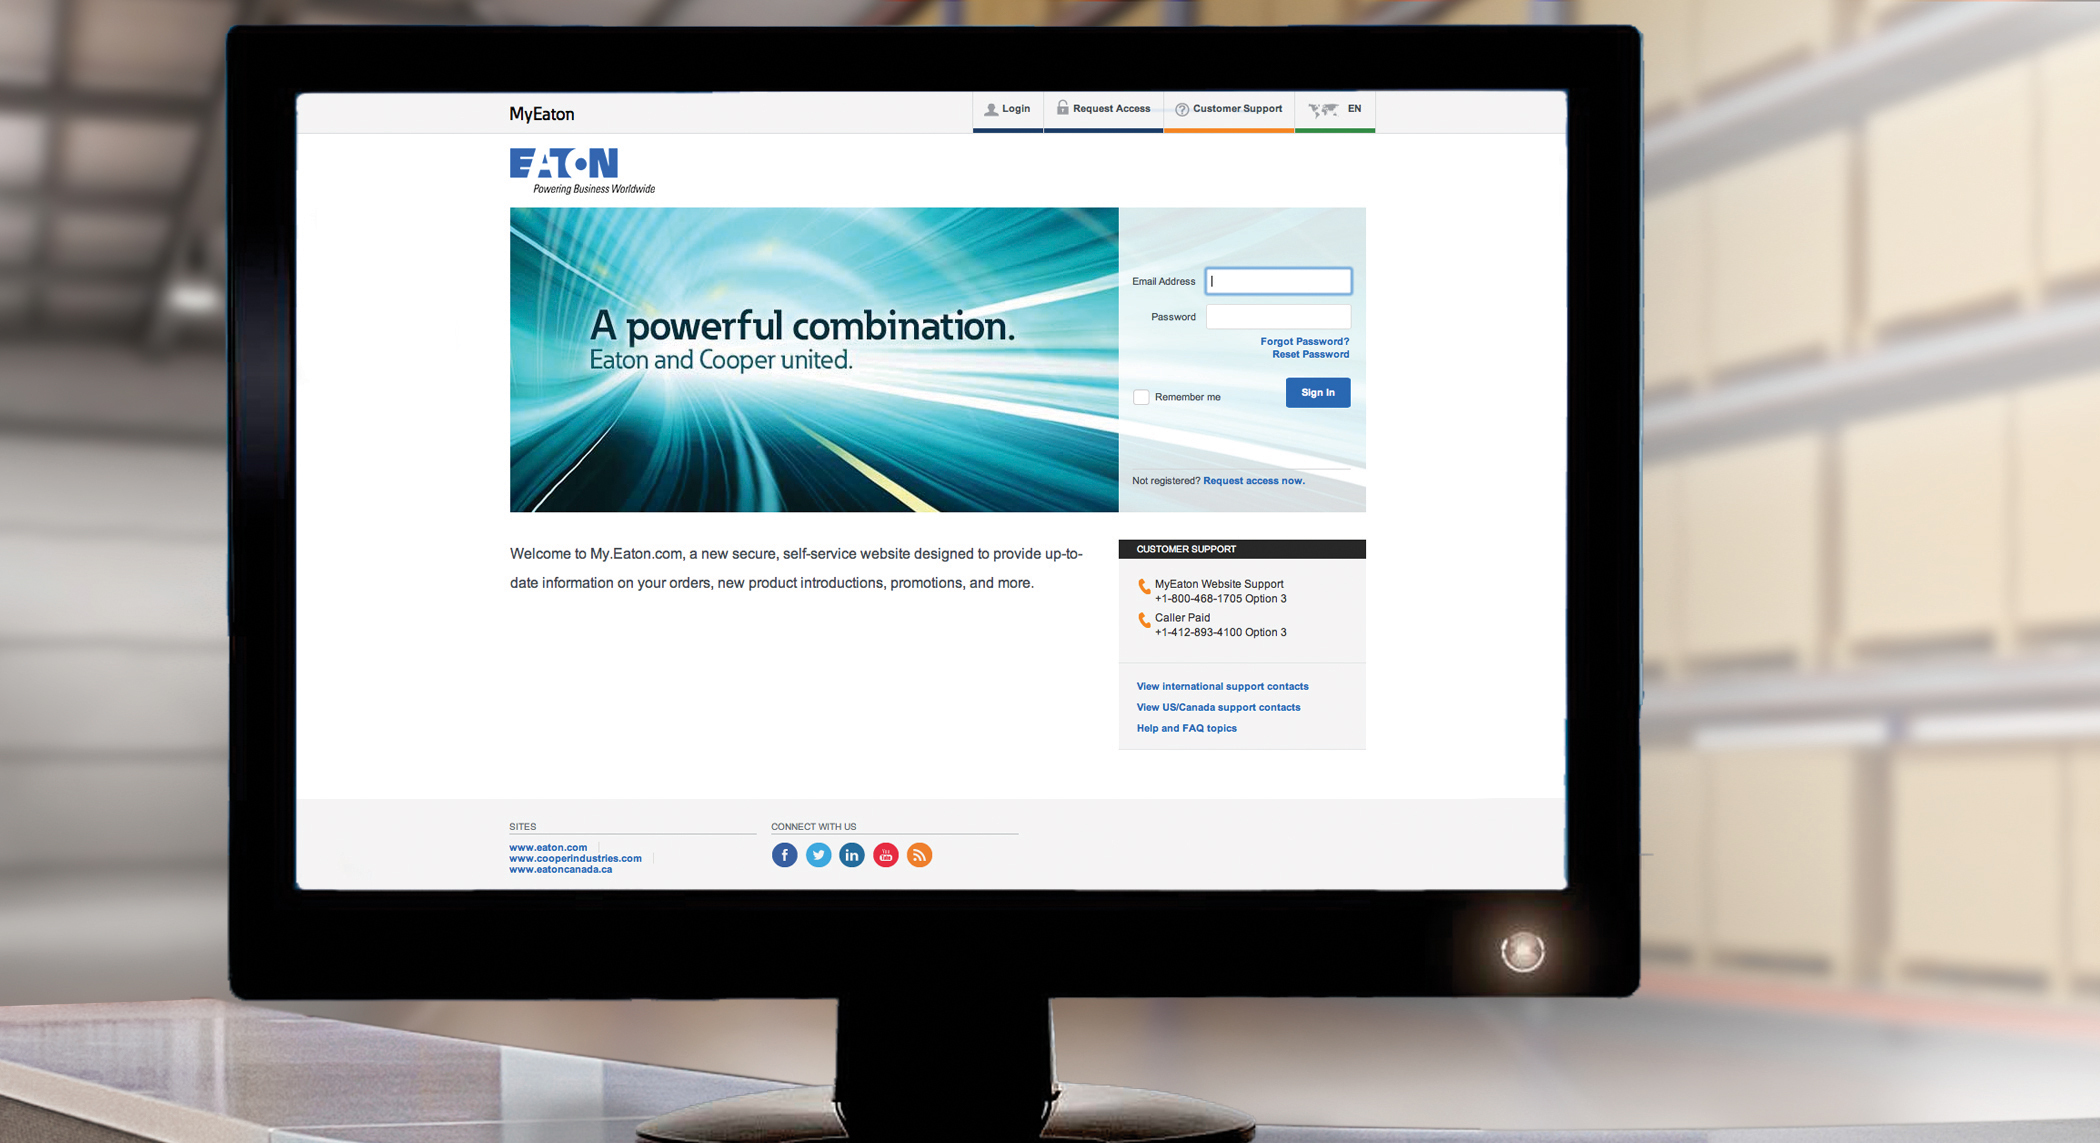 Eaton's new web tool helps its distributors improve productivity, demonstrate leadership and increase sales. (Photo: Business Wire)